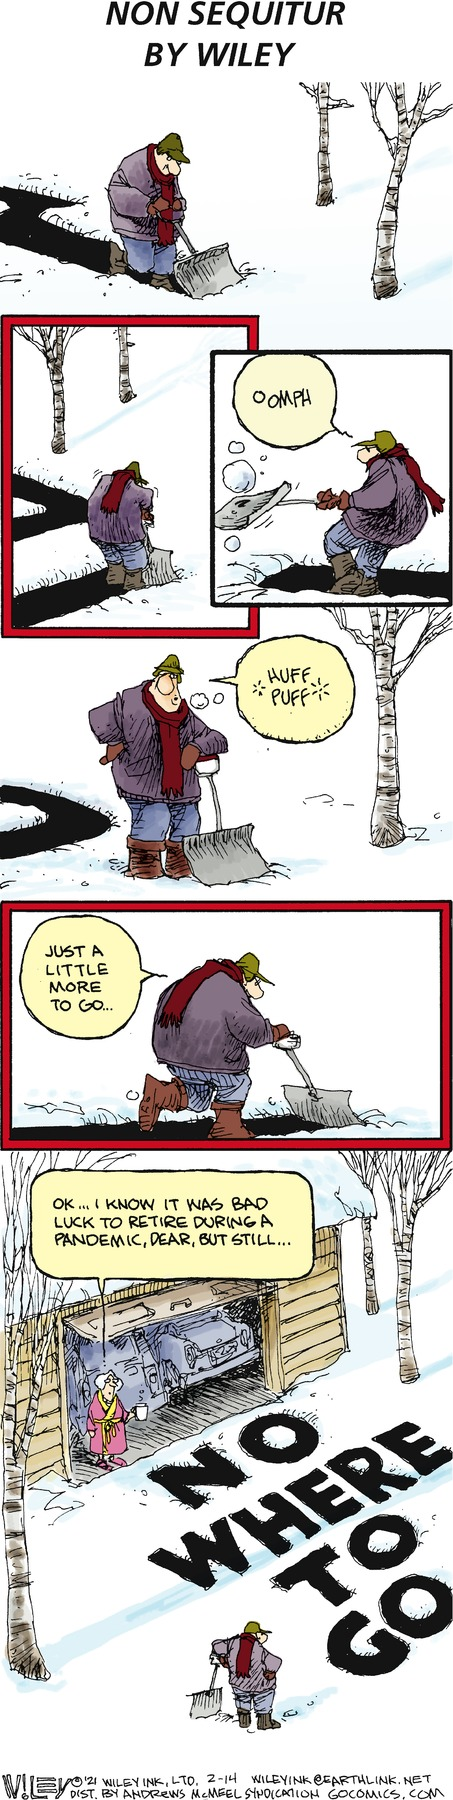 Non Sequitur by Wiley Miller on Sun, 14 Feb 2021